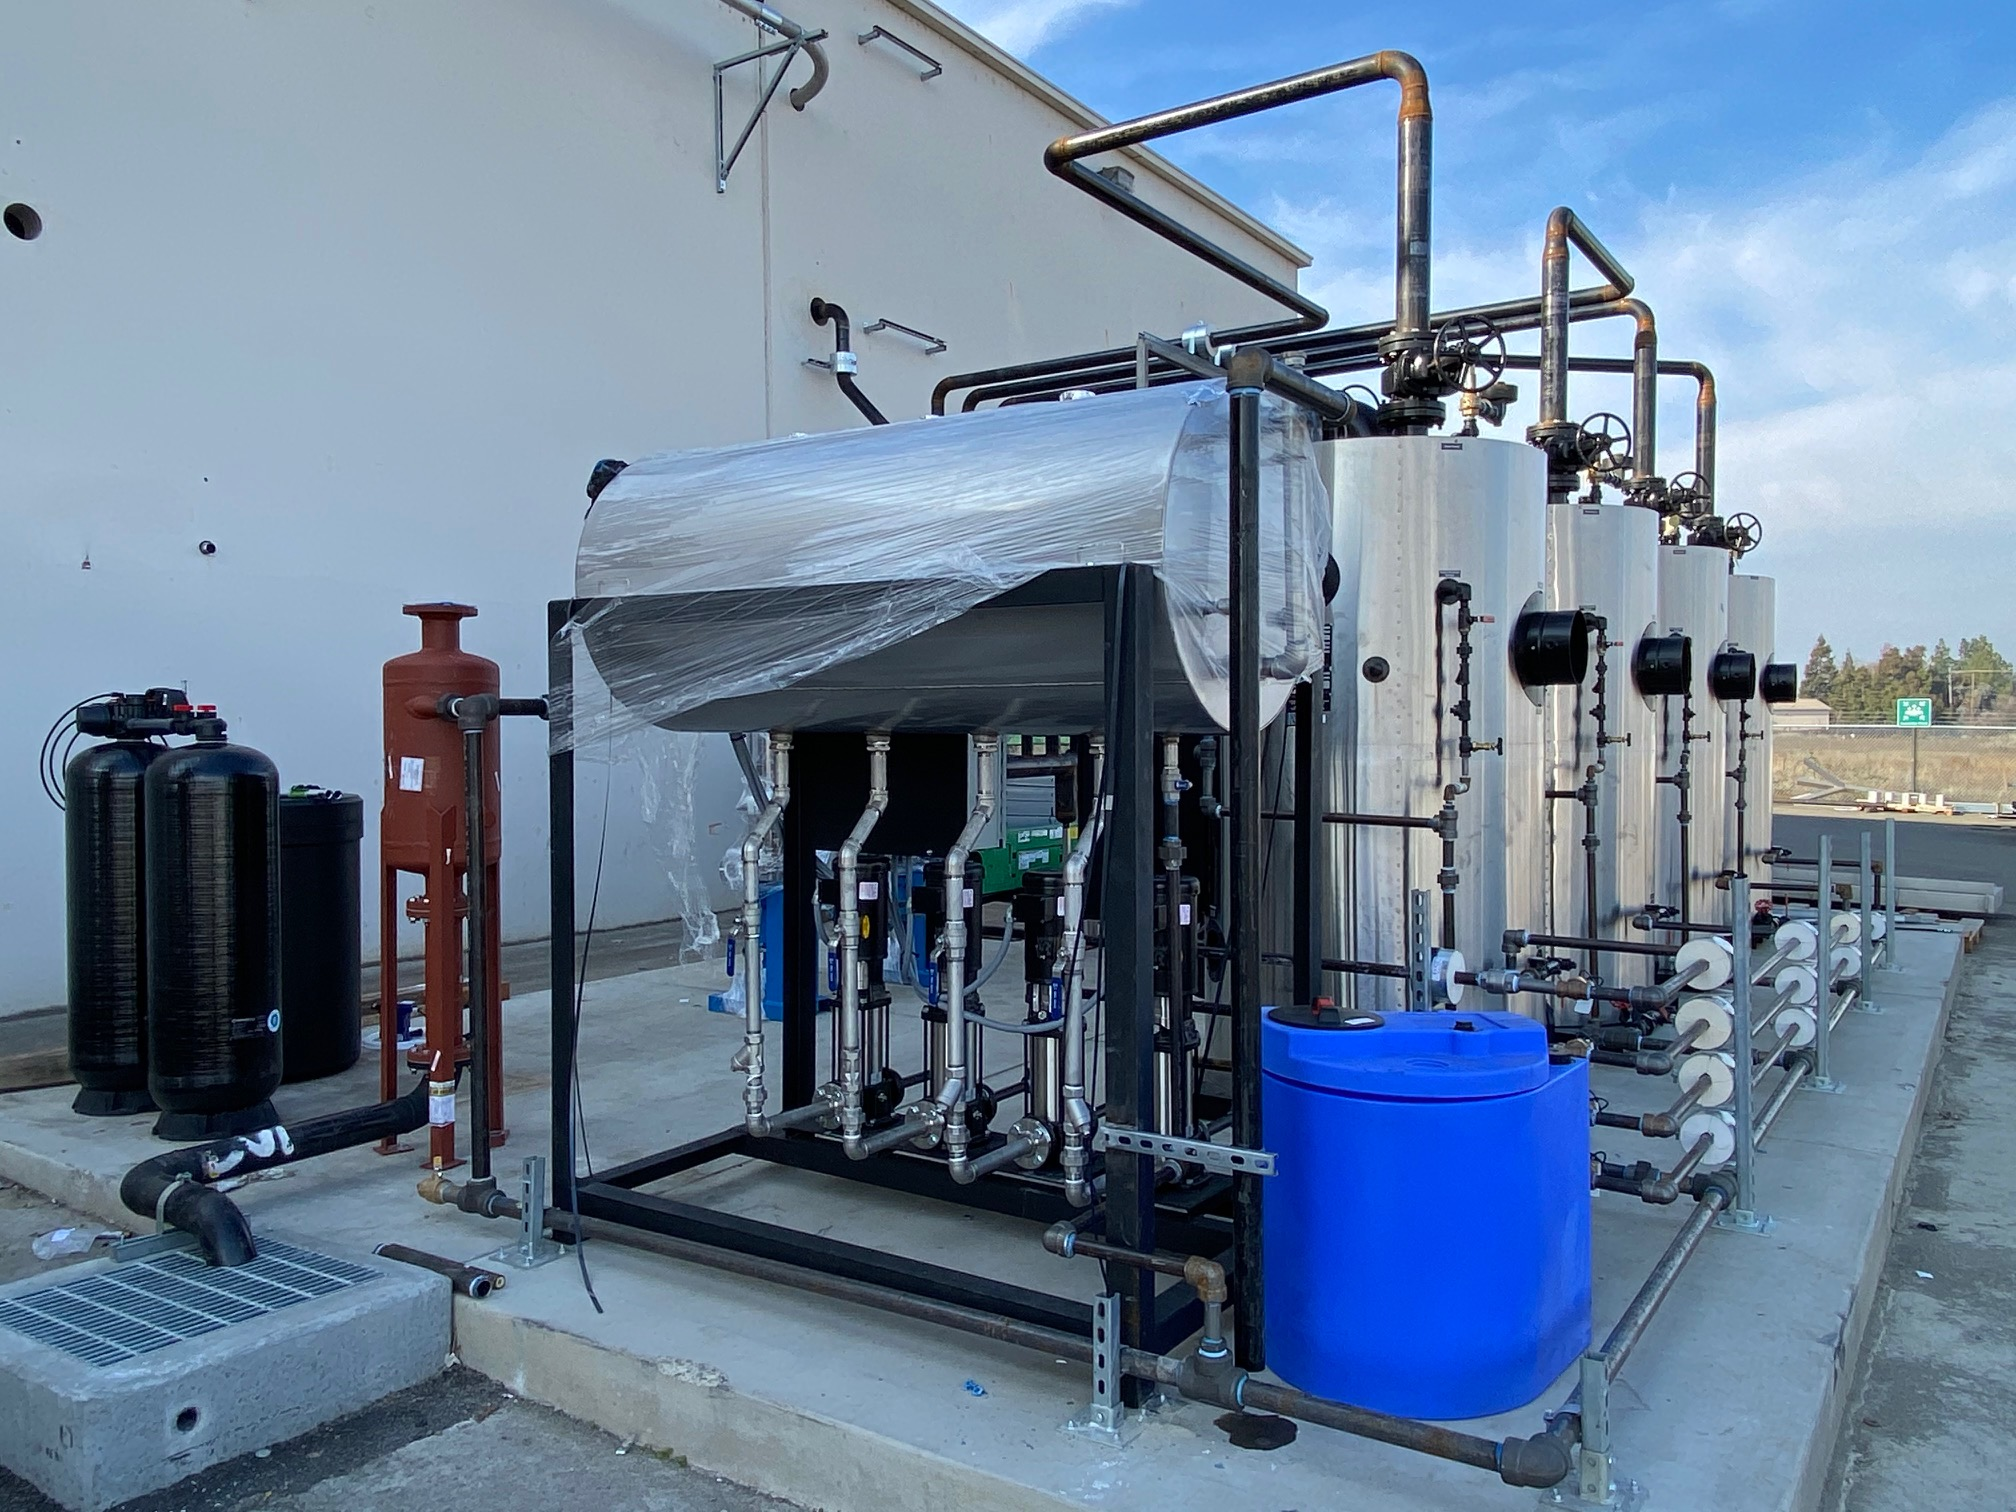 types of boilers used in food processing